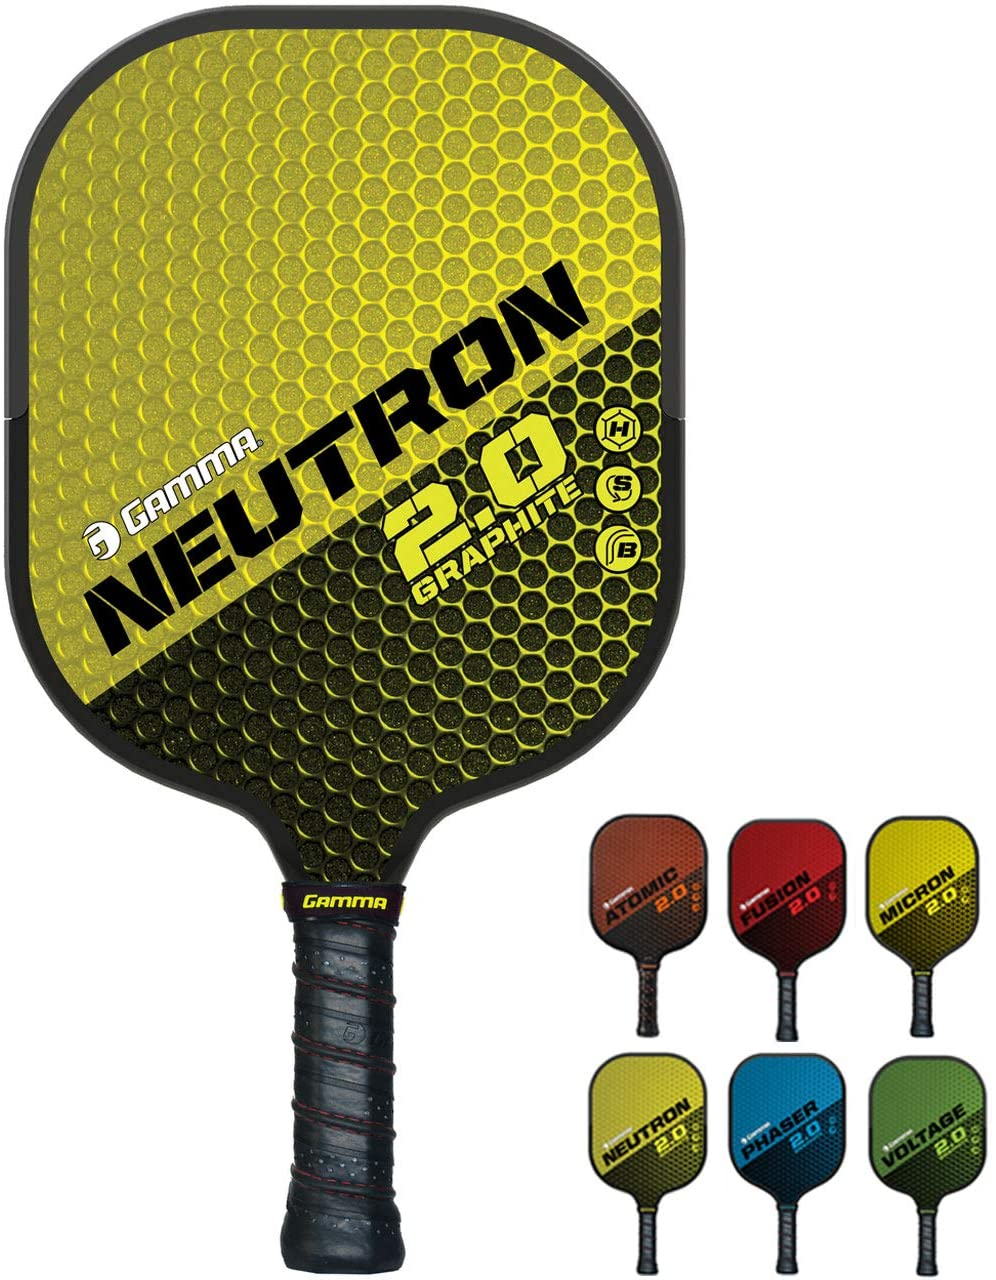 Gamma Neutron Sports 2.0 Pickleball Paddles